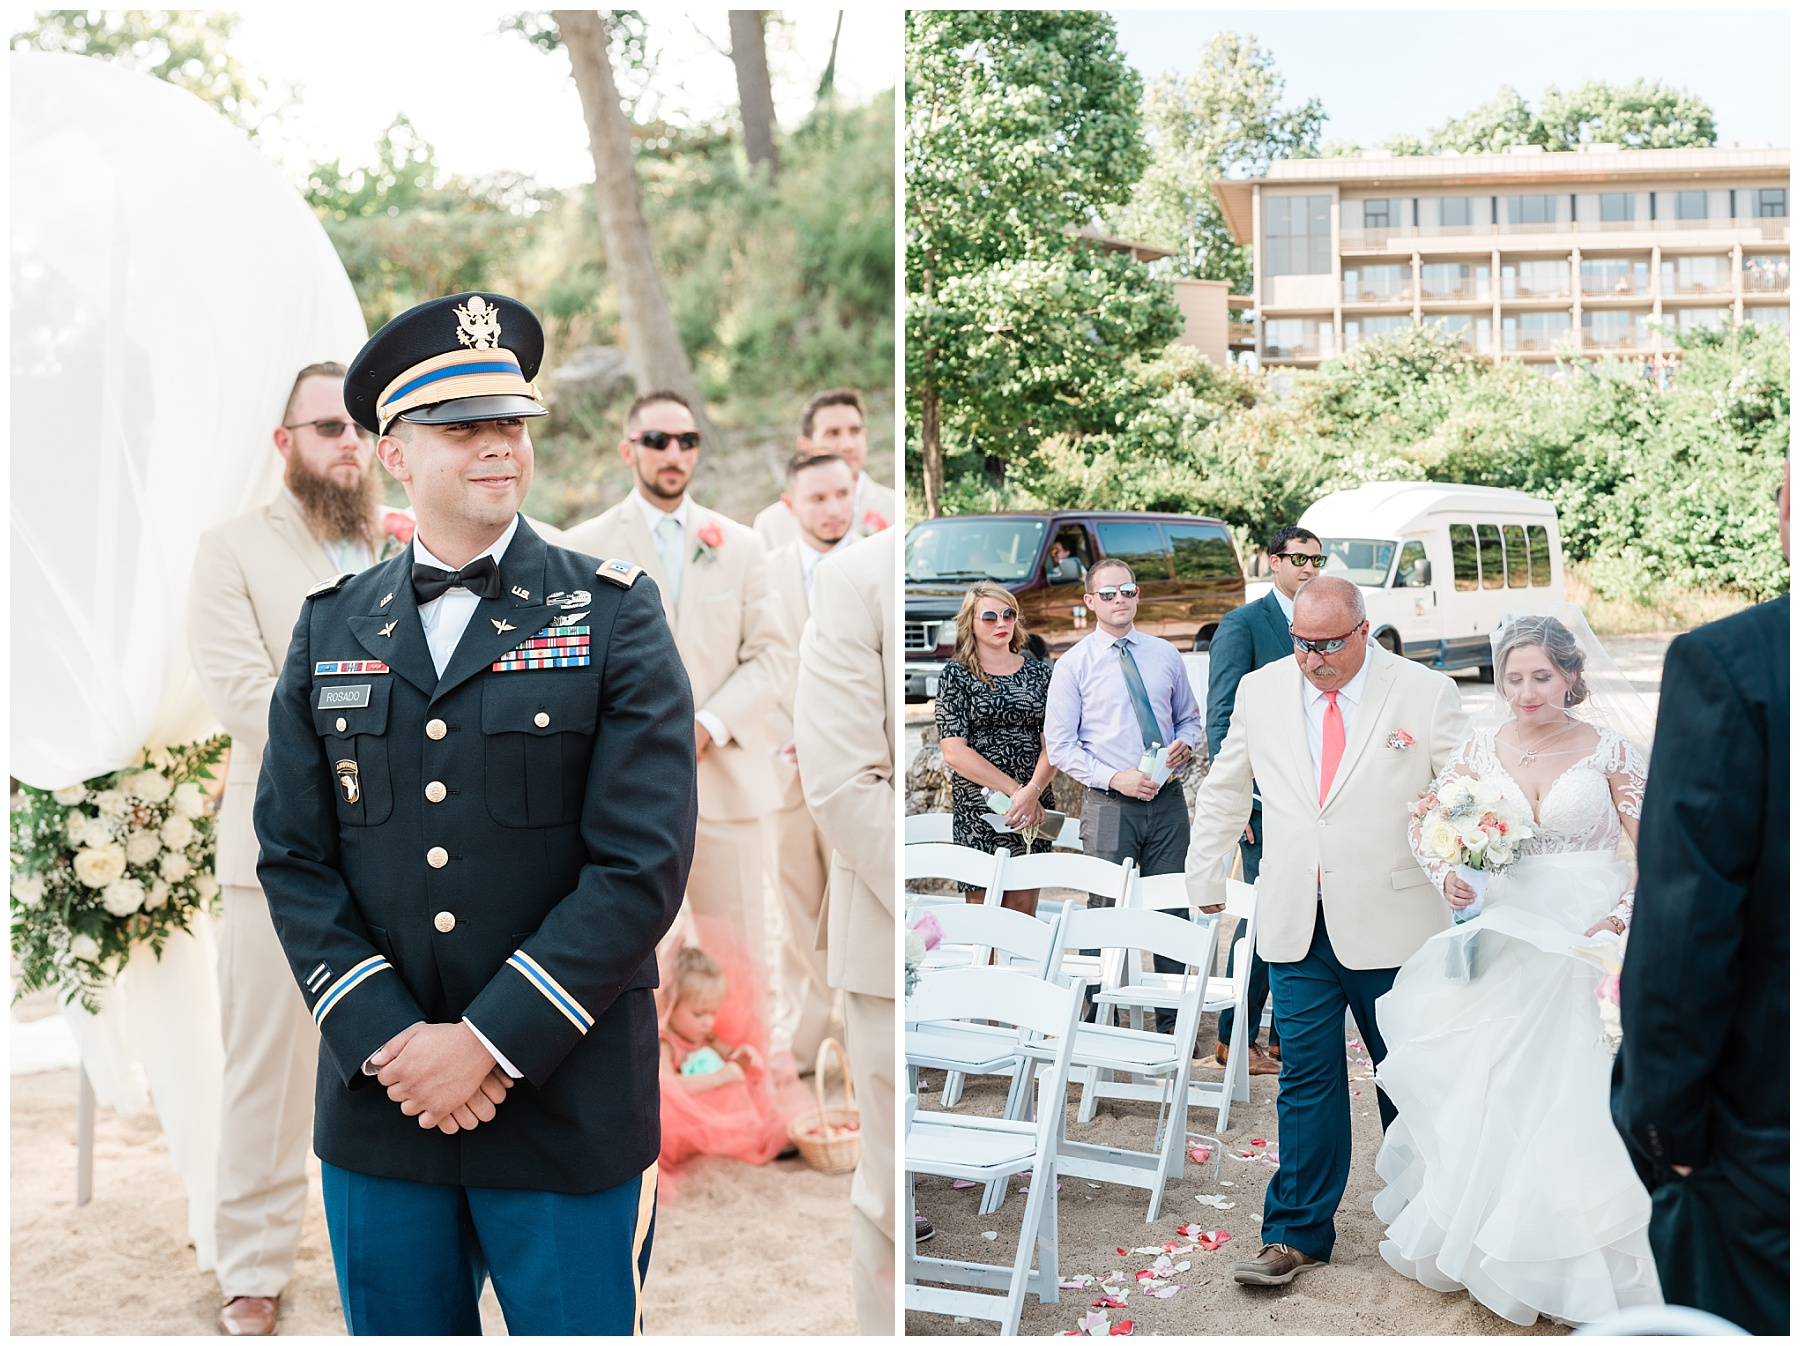 Beachside Sunset Wedding At Lodge Of Four Seasons At Lake Of The Ozarks By Kelsi Kliethermes Photography_0014.jpg